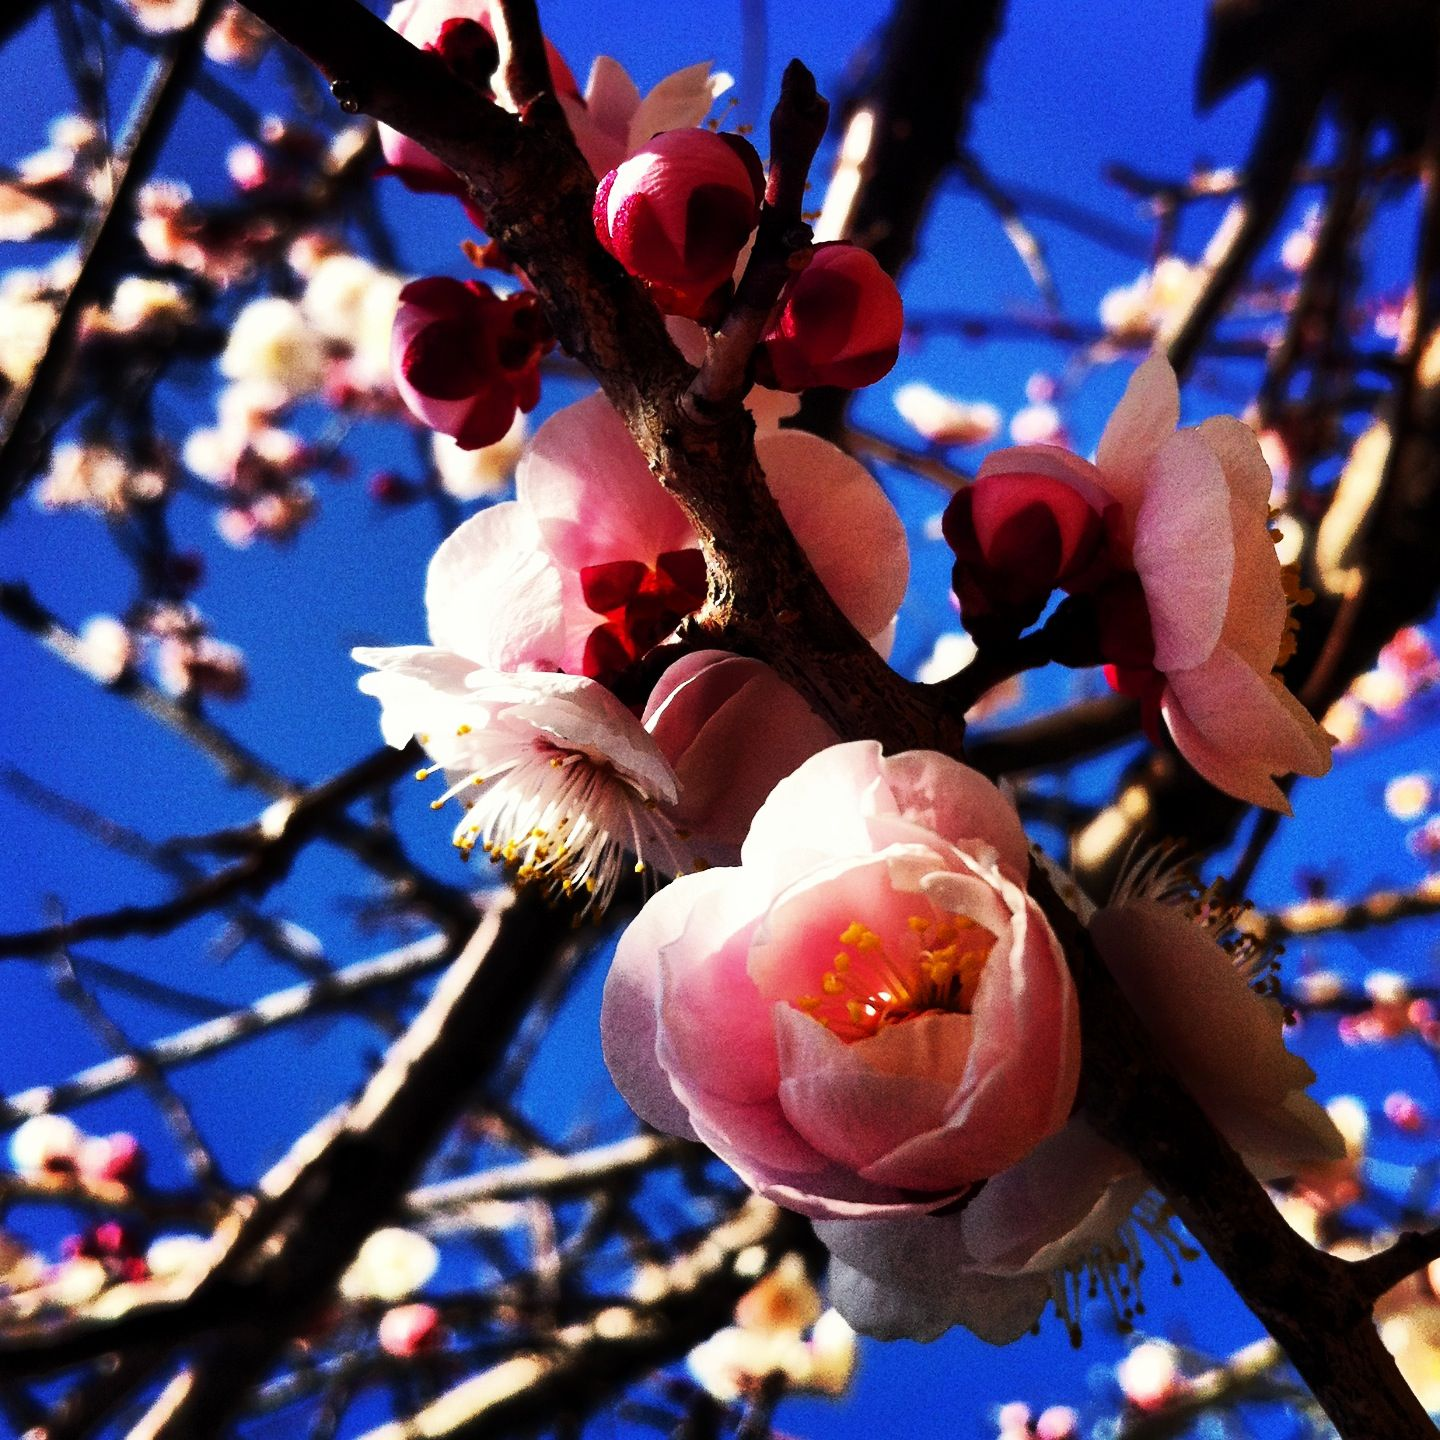 Ume blossoms are beautiful this time if year in Hiroshima, Japan #flowers